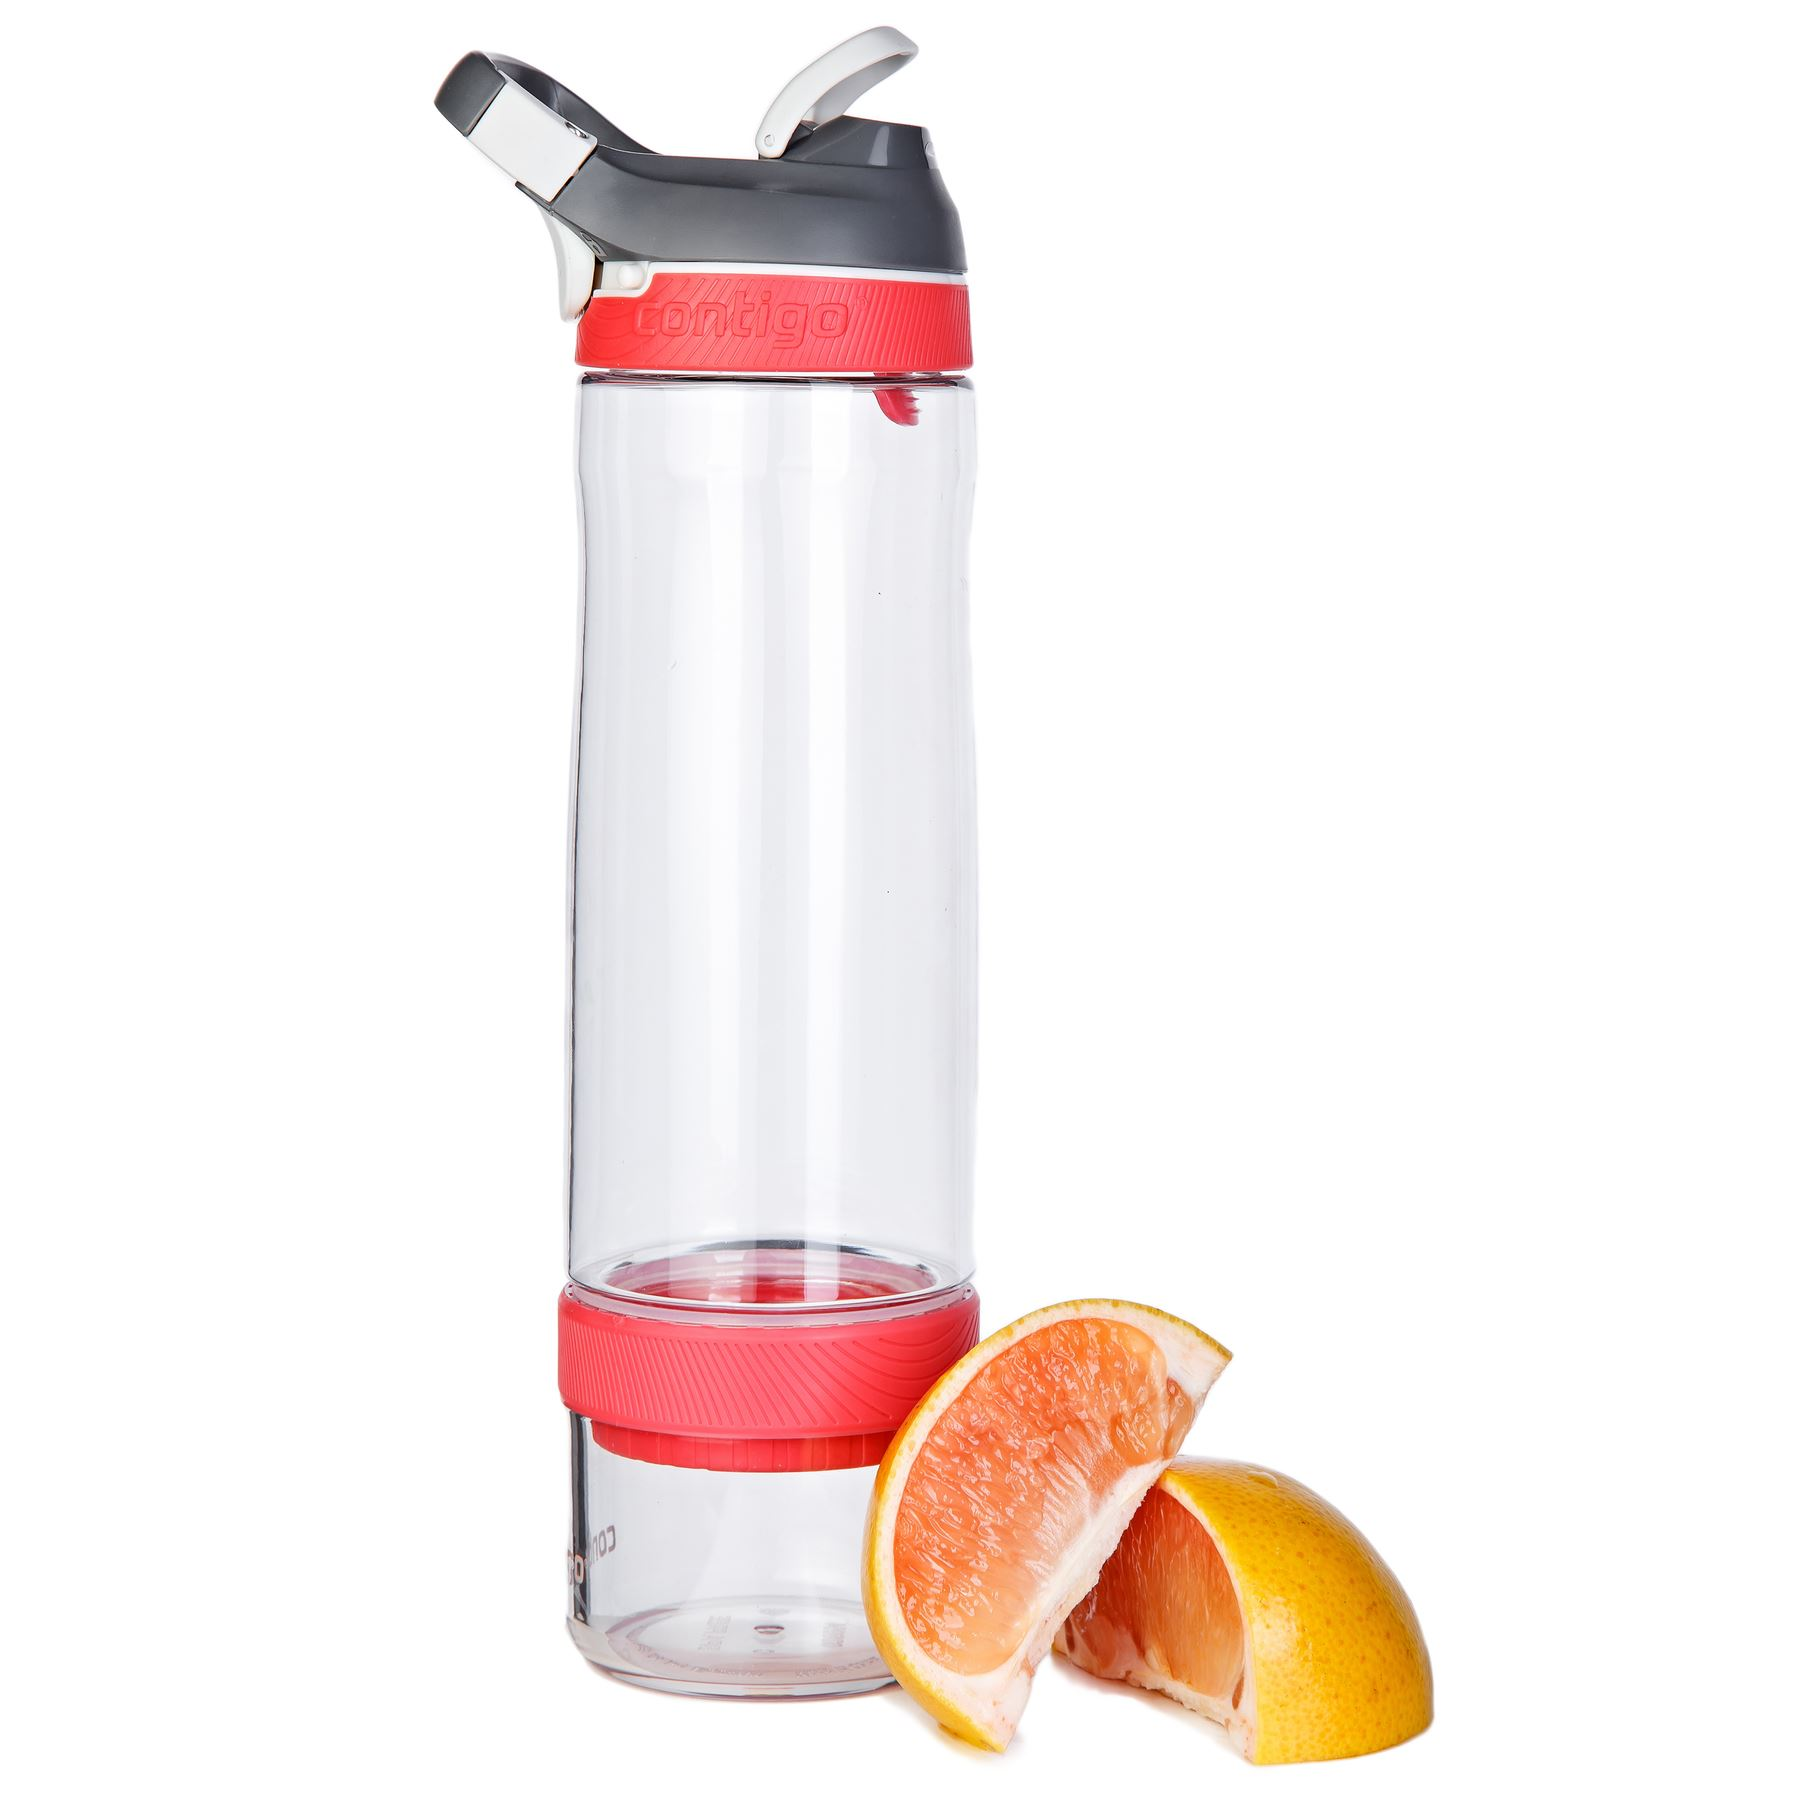 d4b103cb2b Contigo Cortland AutoSeal Infuser Water Bottle 770ml 26oz, Outdoor ...